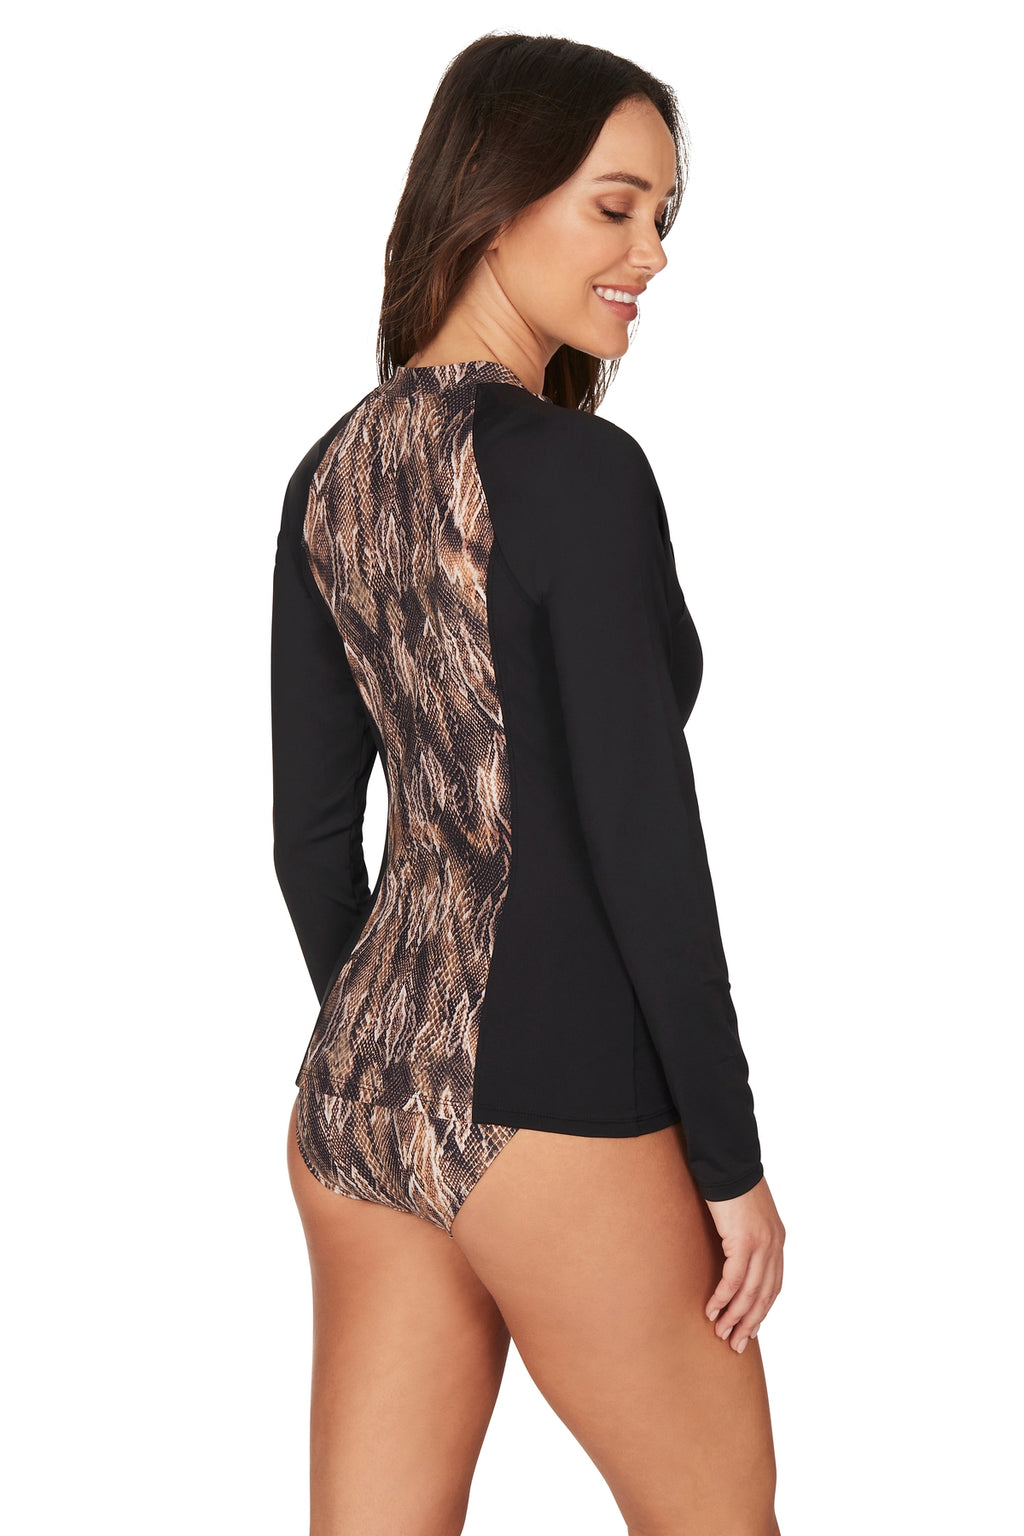 Rattle Me Yolanda Long Sleeve Sunsafe Top